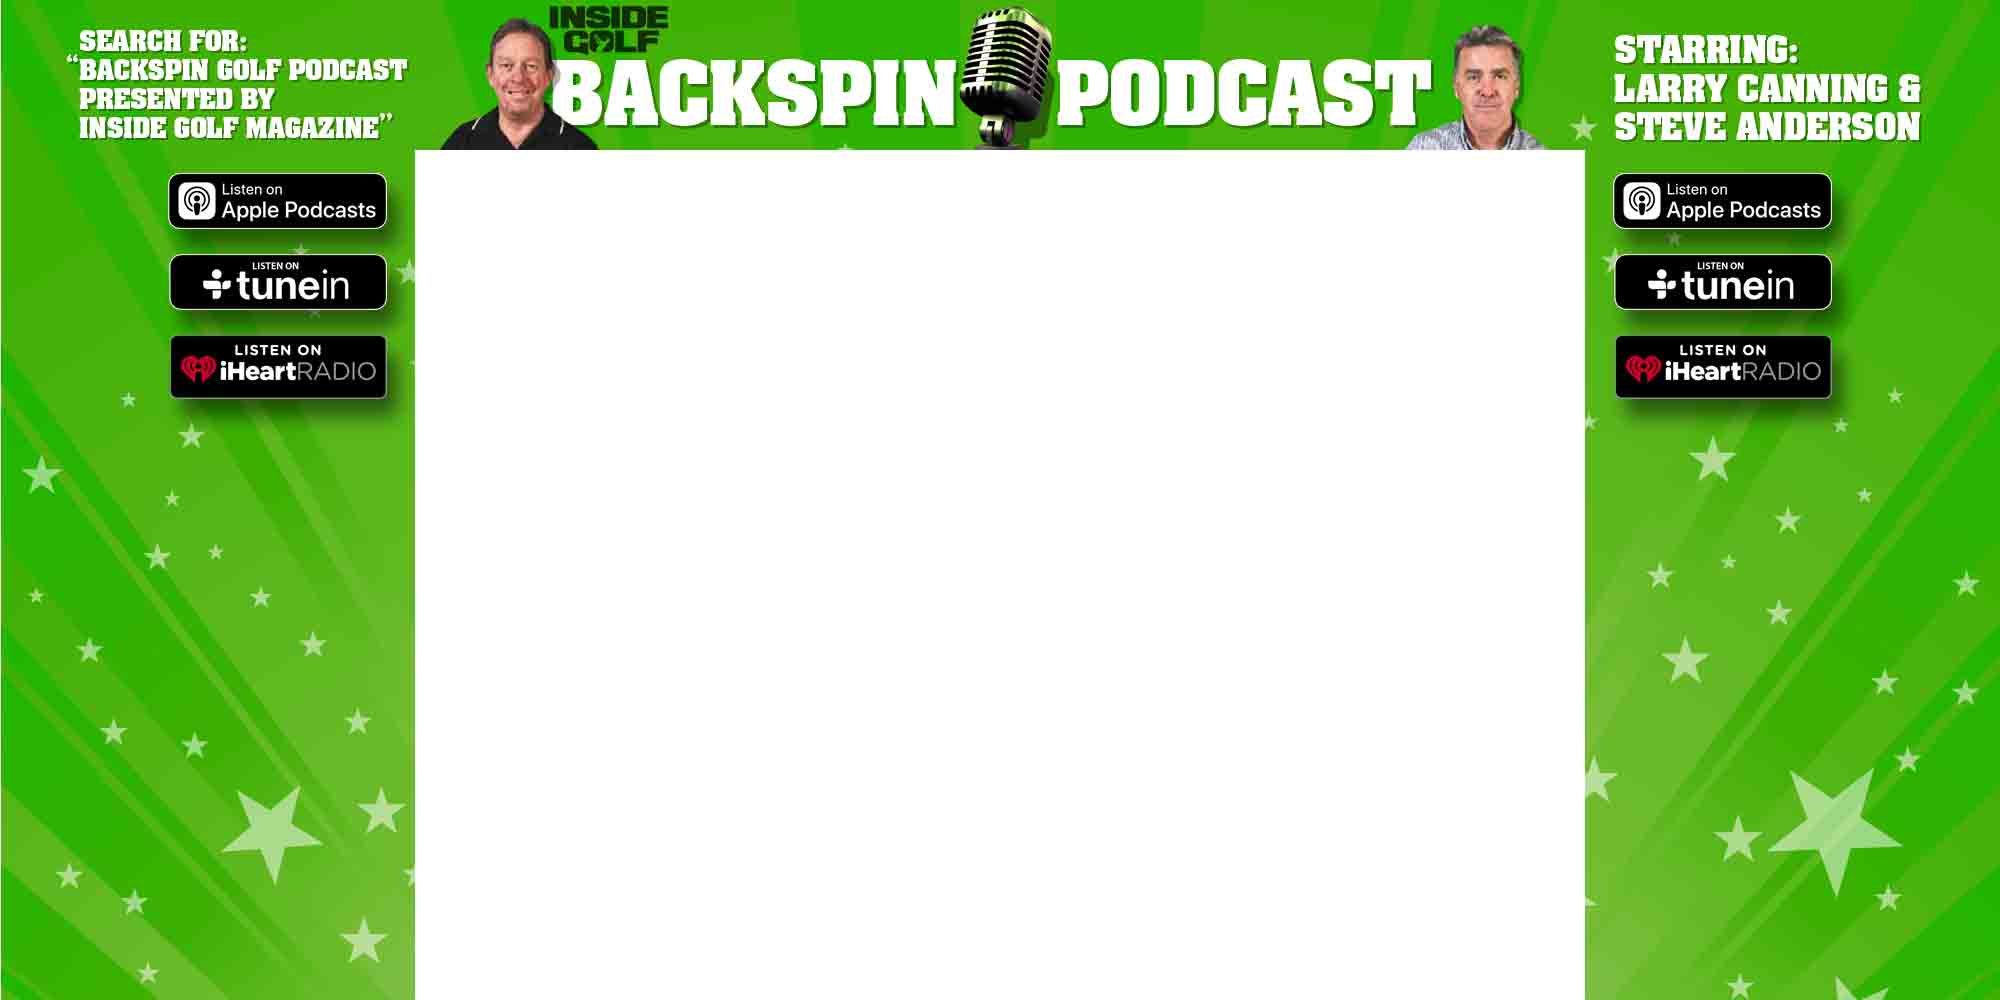 Backspin-Podcast-Site-Takeover-Lowres